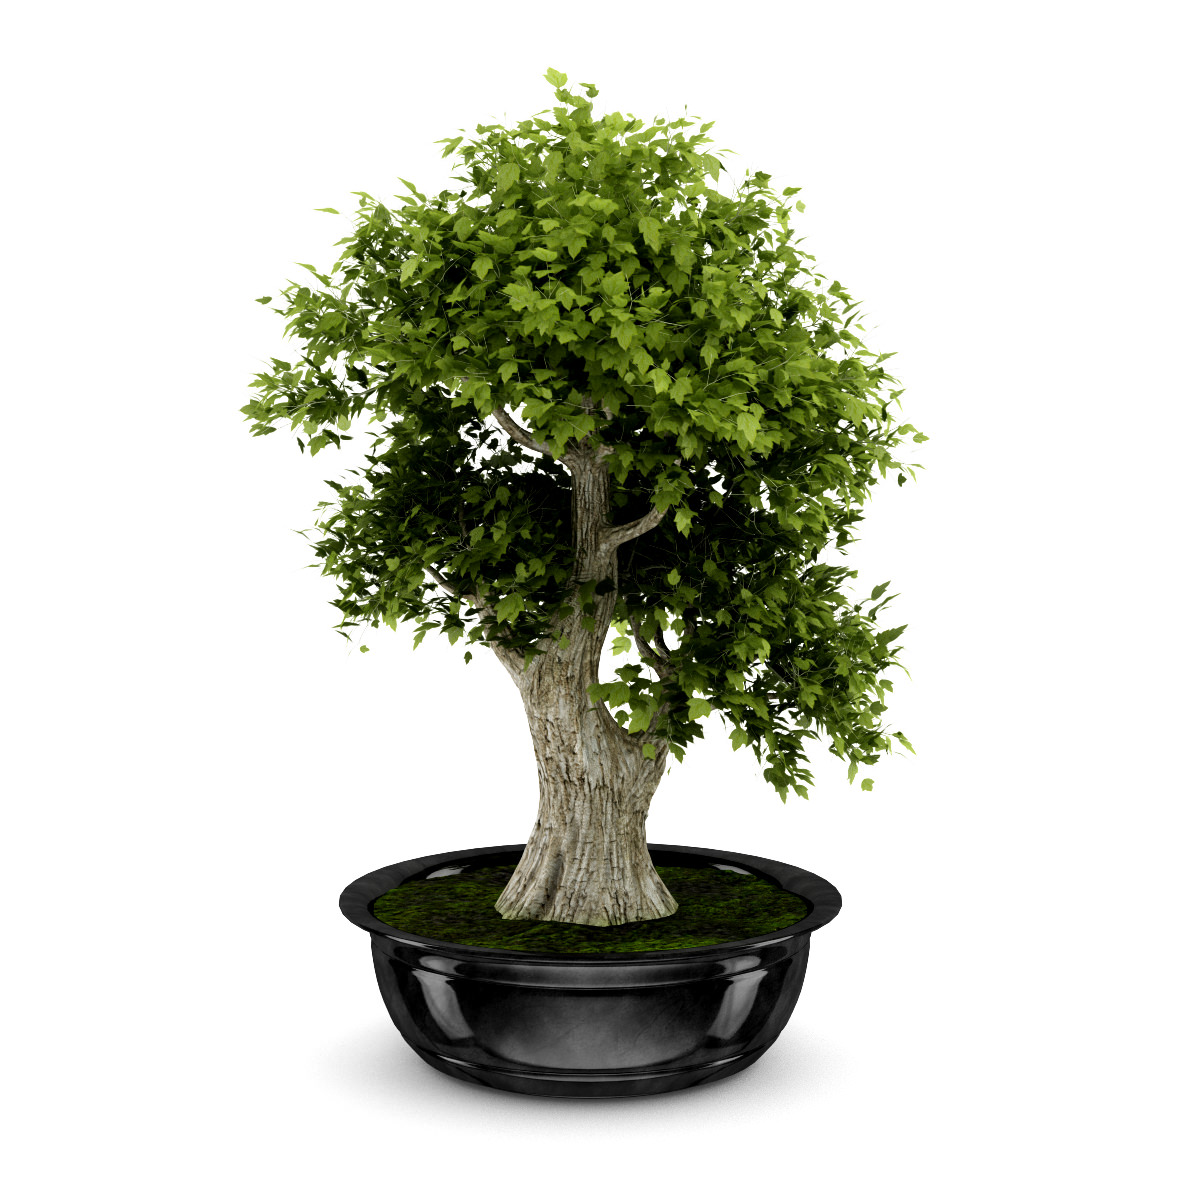 tree and bonsai Japanese bonsai is all about taking care of the tree, pruning it and cultivating it to grow strong, albeit small other variations of bonsai include creating scenes from nature, but in japan – the home of bonsai trees – they remain focused on growing those trees.